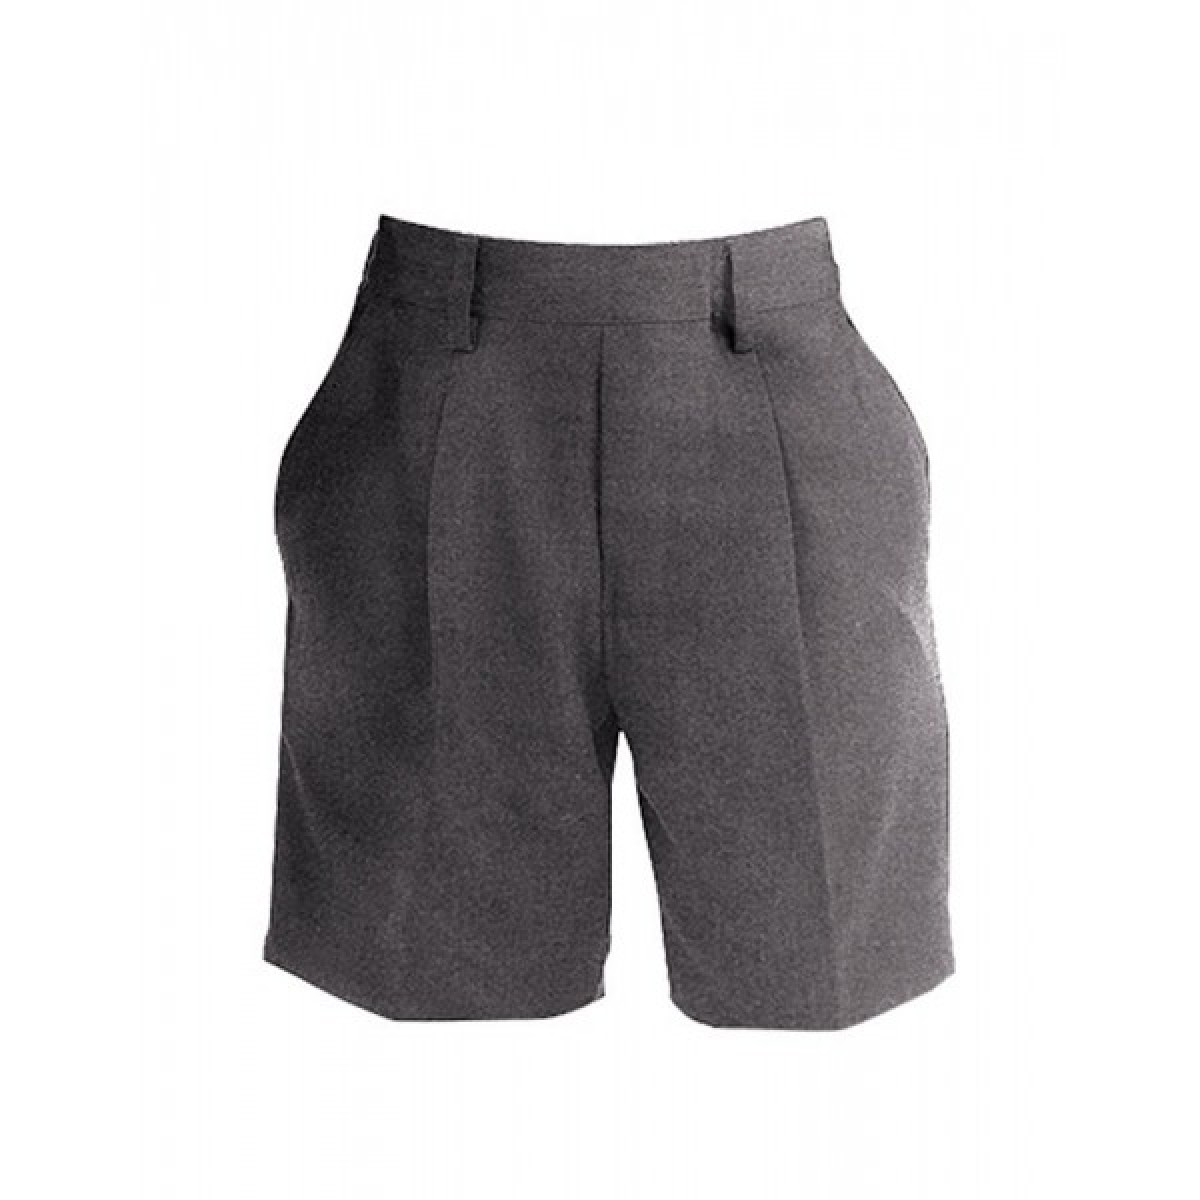 Shop for boys grey shorts online at Target. Free shipping on purchases over $35 and save 5% every day with your Target REDcard.